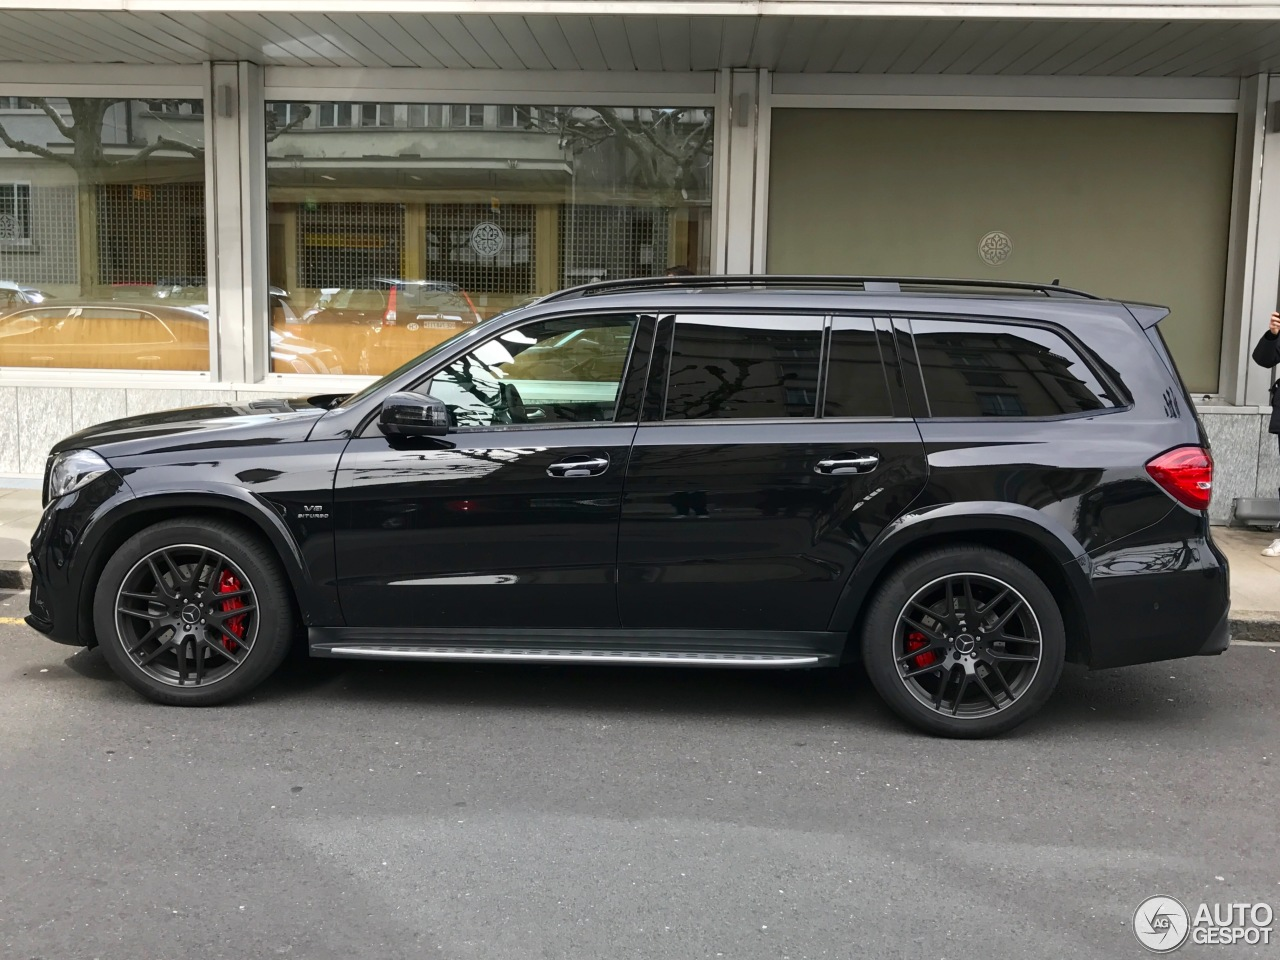 28+ Images [2018 Mercedes Amg Gls 63 Picture] - 2018 ...